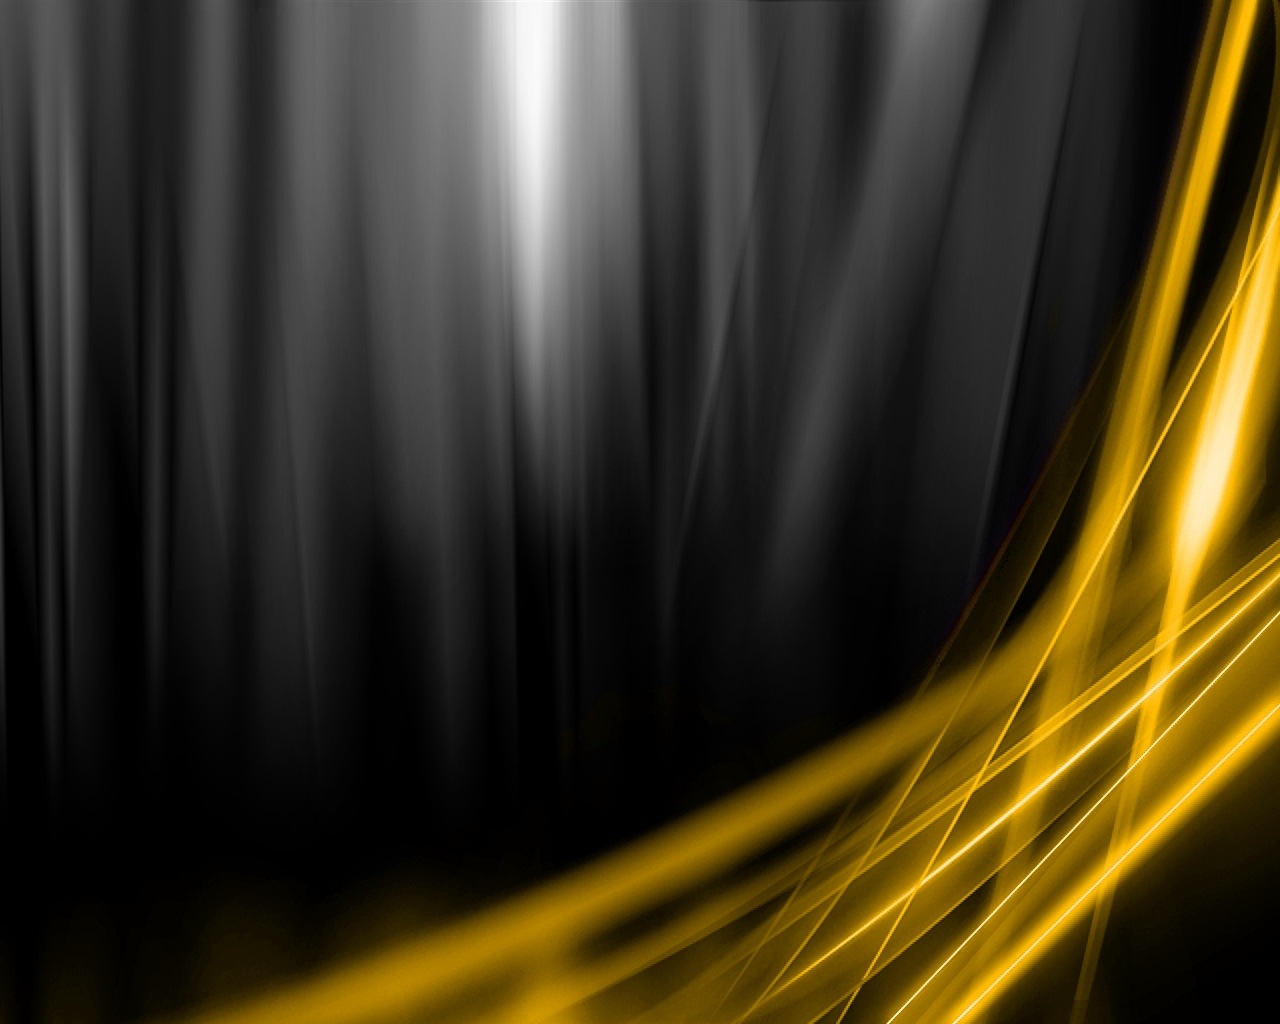 10 New Black And Gold Wallpaper Hd FULL HD 1080p For PC ...